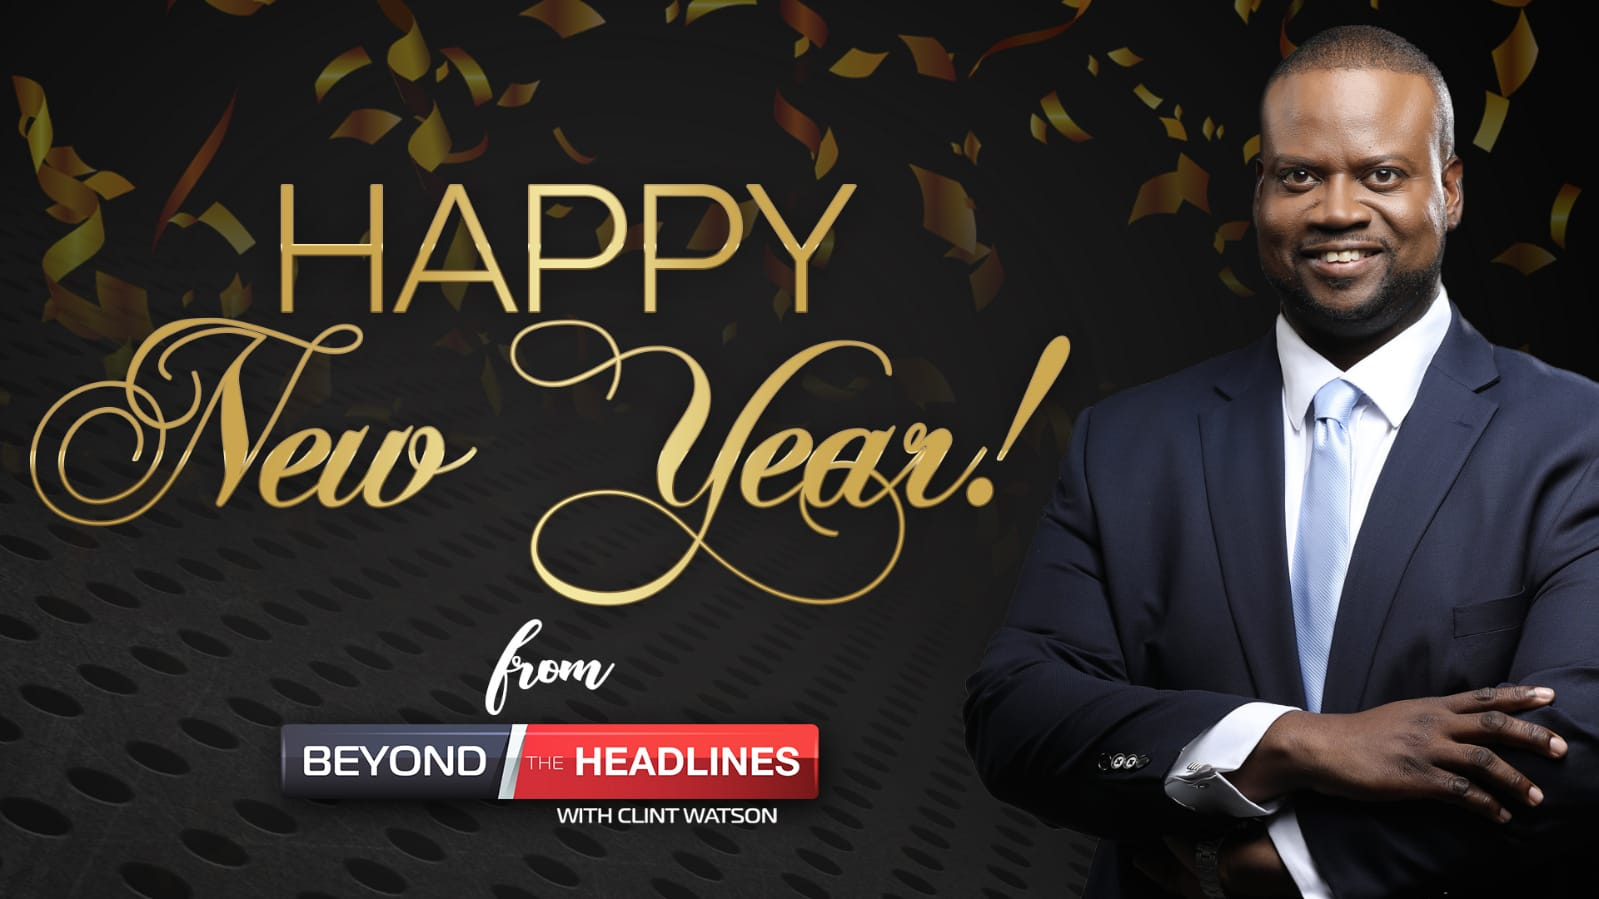 Happy New Year from Beyond The Headlines